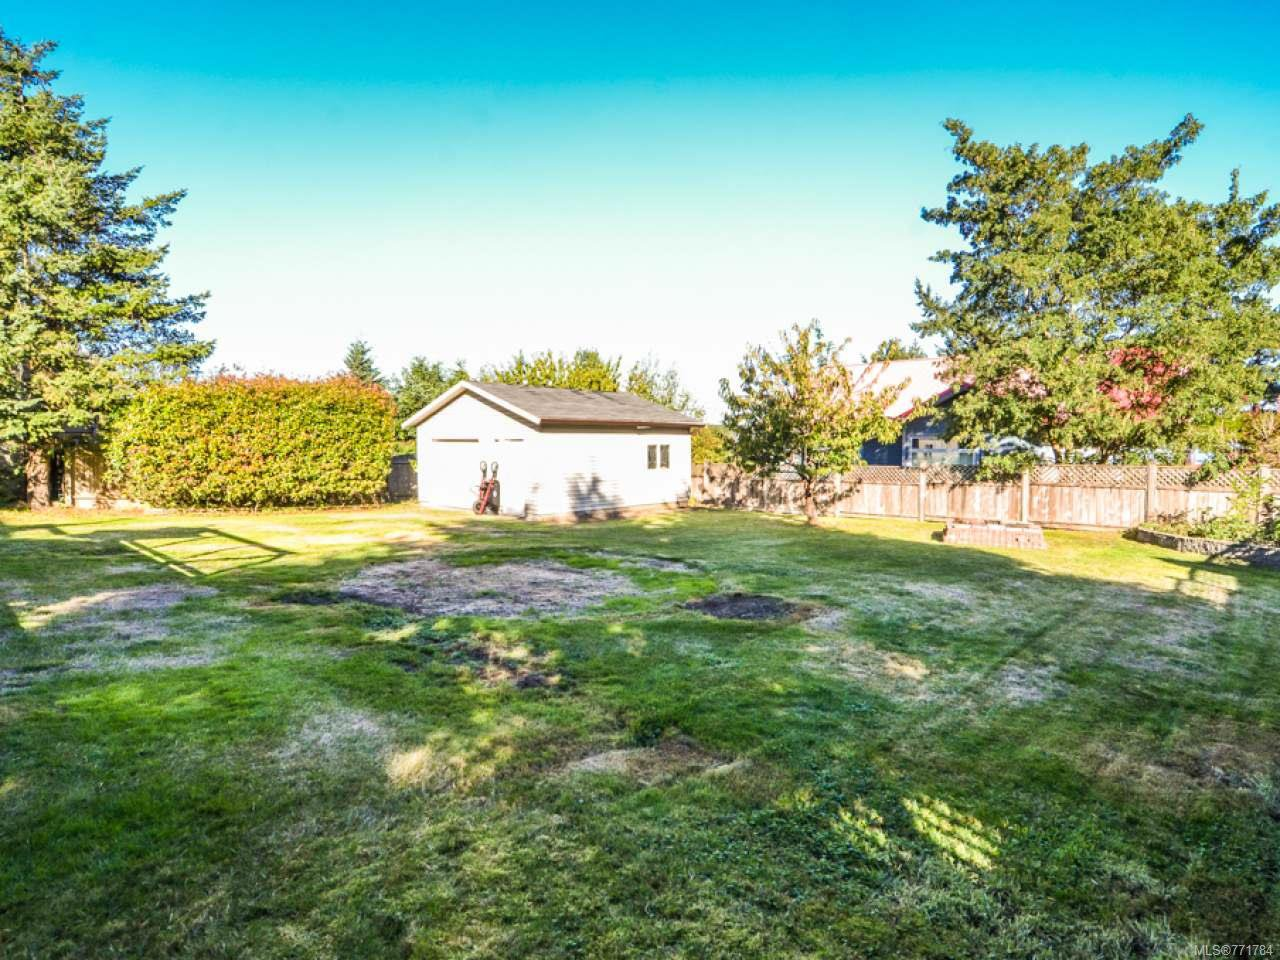 Photo 4: Photos: 3974 Dillman Rd in CAMPBELL RIVER: CR Campbell River South House for sale (Campbell River)  : MLS®# 771784